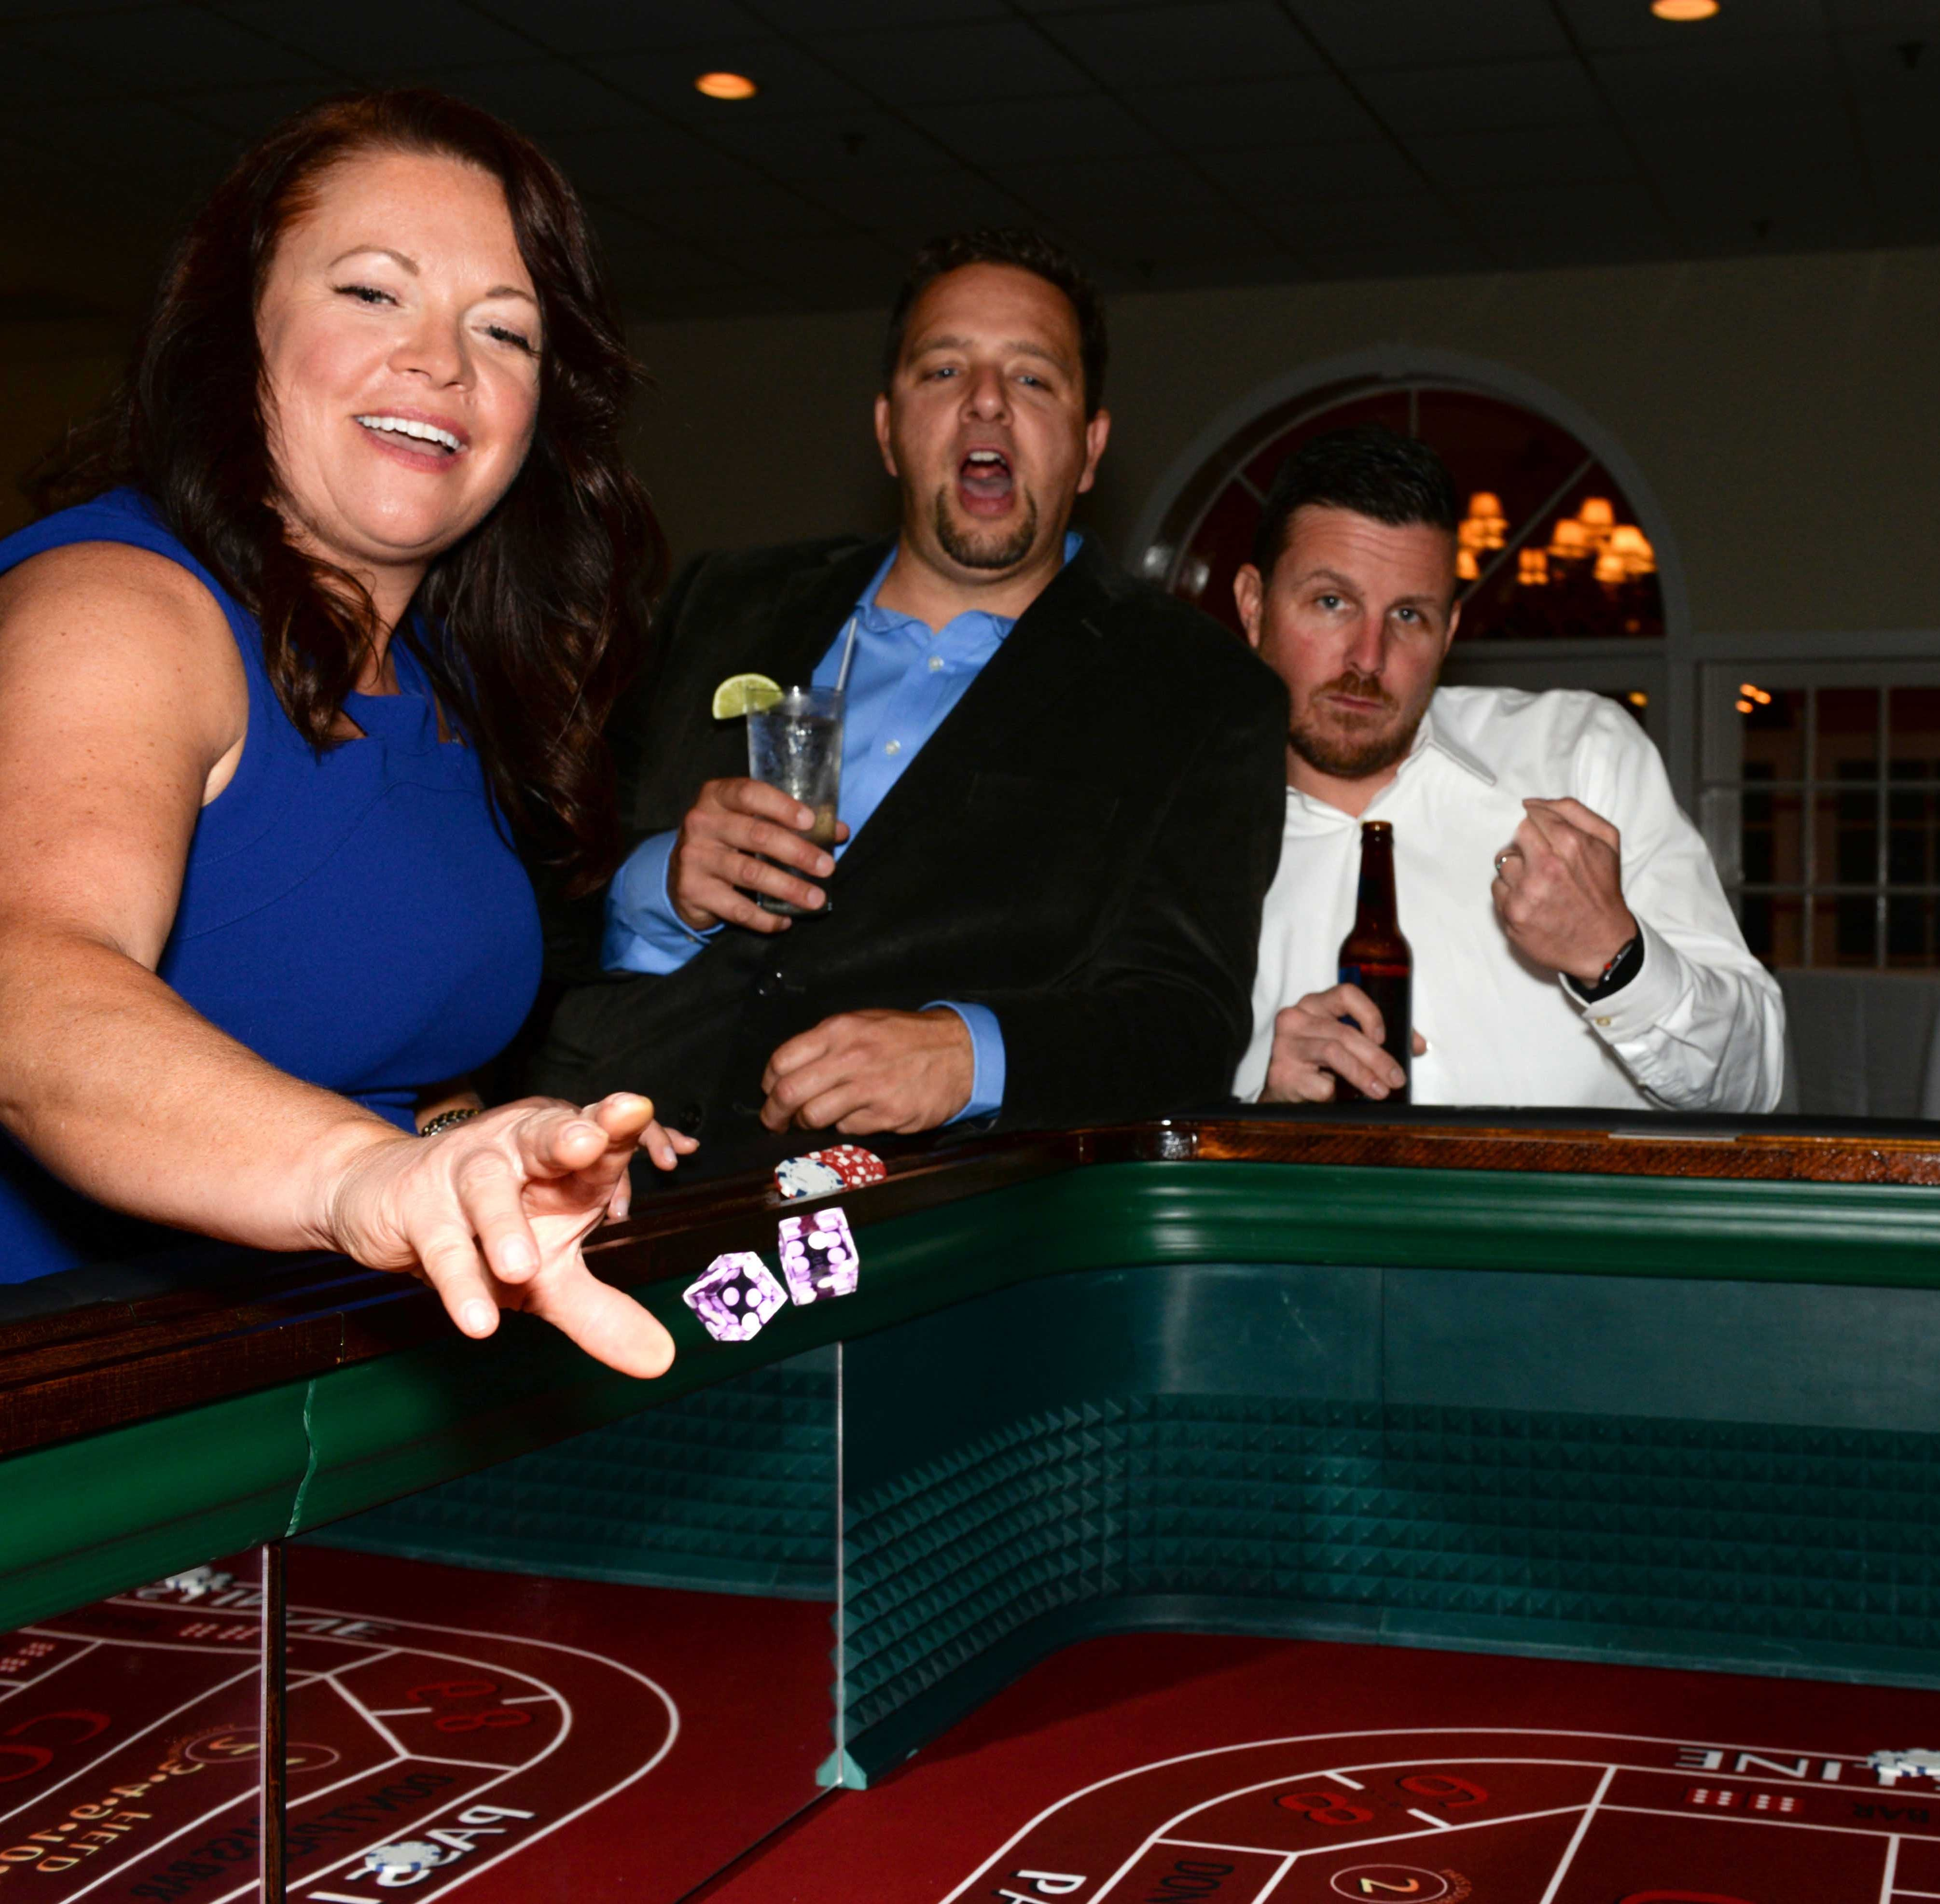 Renaissance Charter School parents, teachers gamble night away at 'Viva Las Vegas' gala